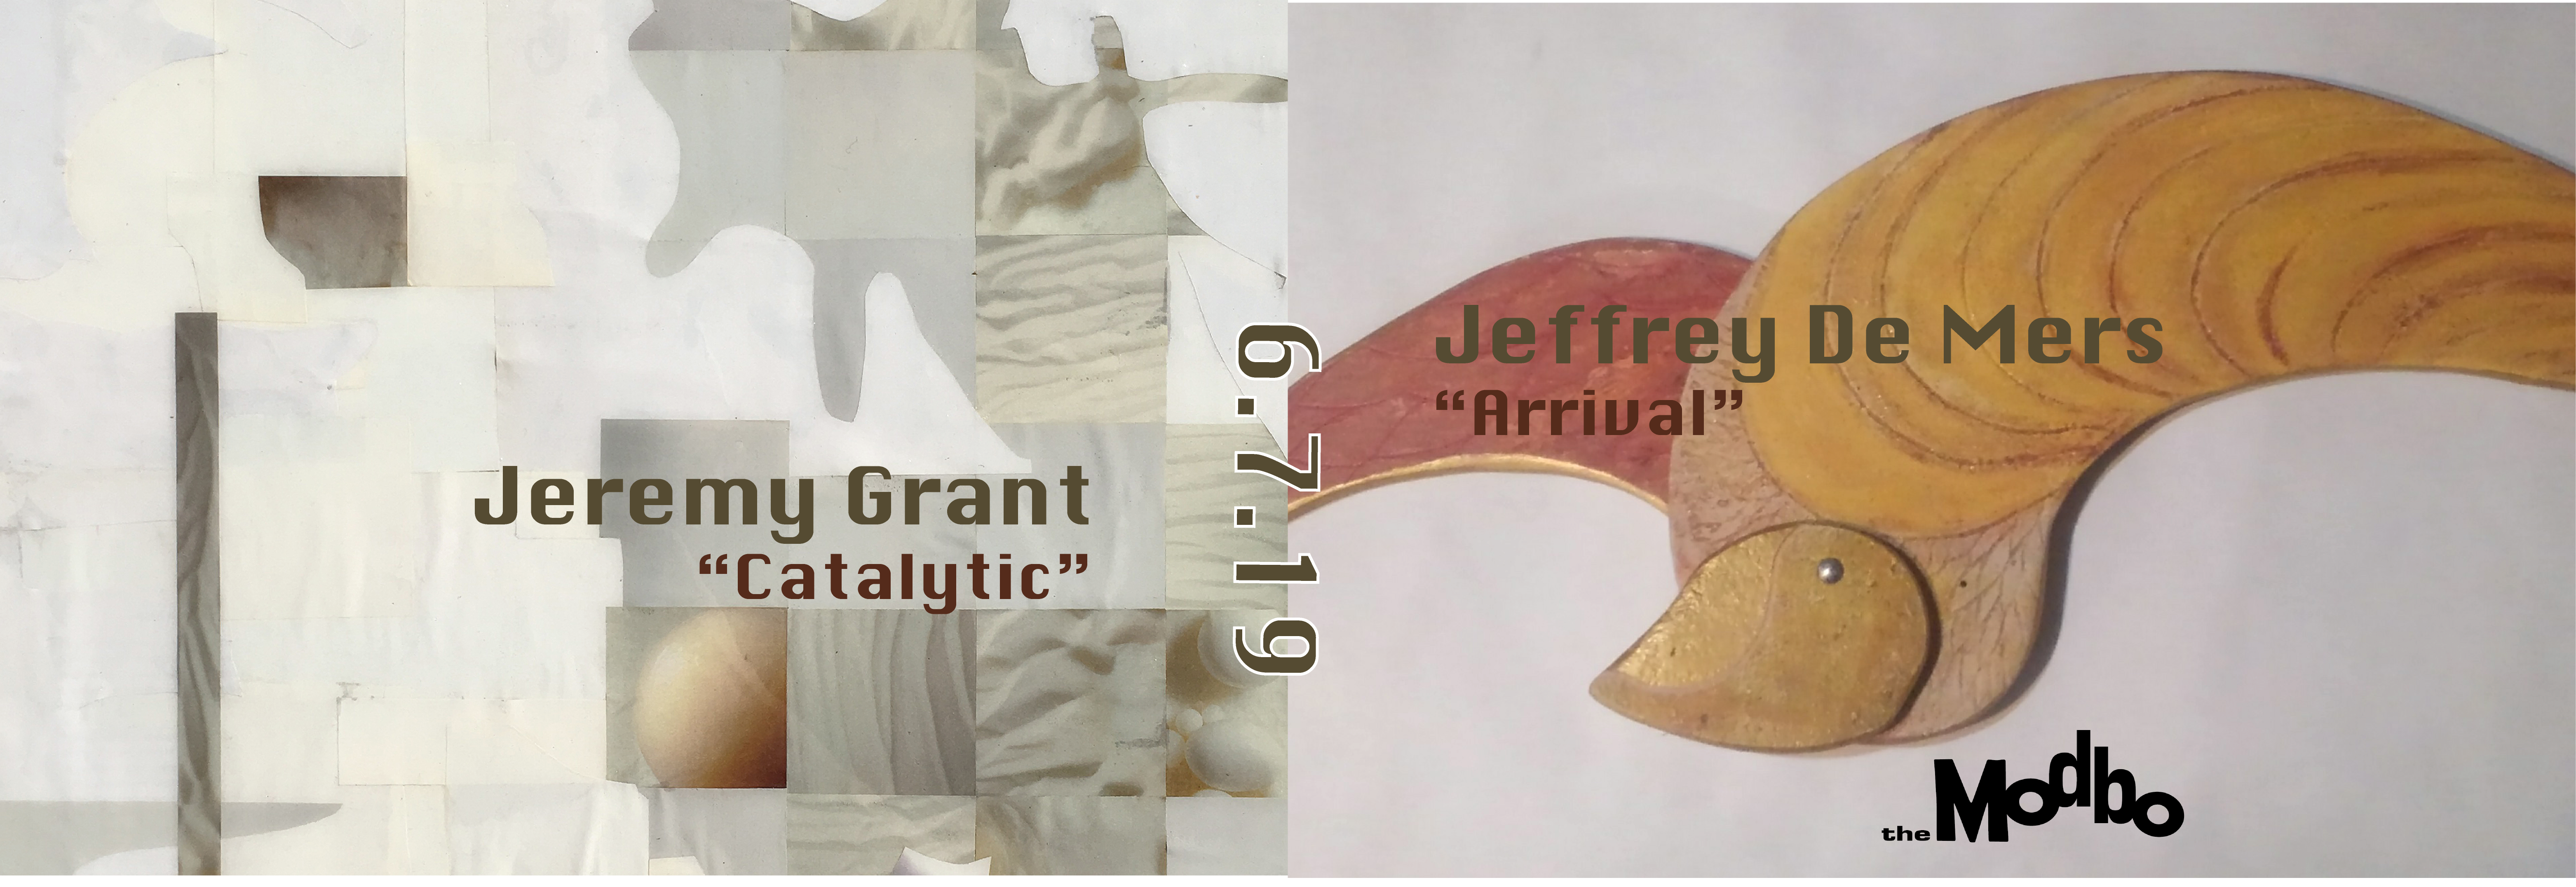 """June's First Friday at The Modbo: """"Catalytic"""" by Jeremy Grant and """"Arrival"""" by Jeffrey de Mers"""